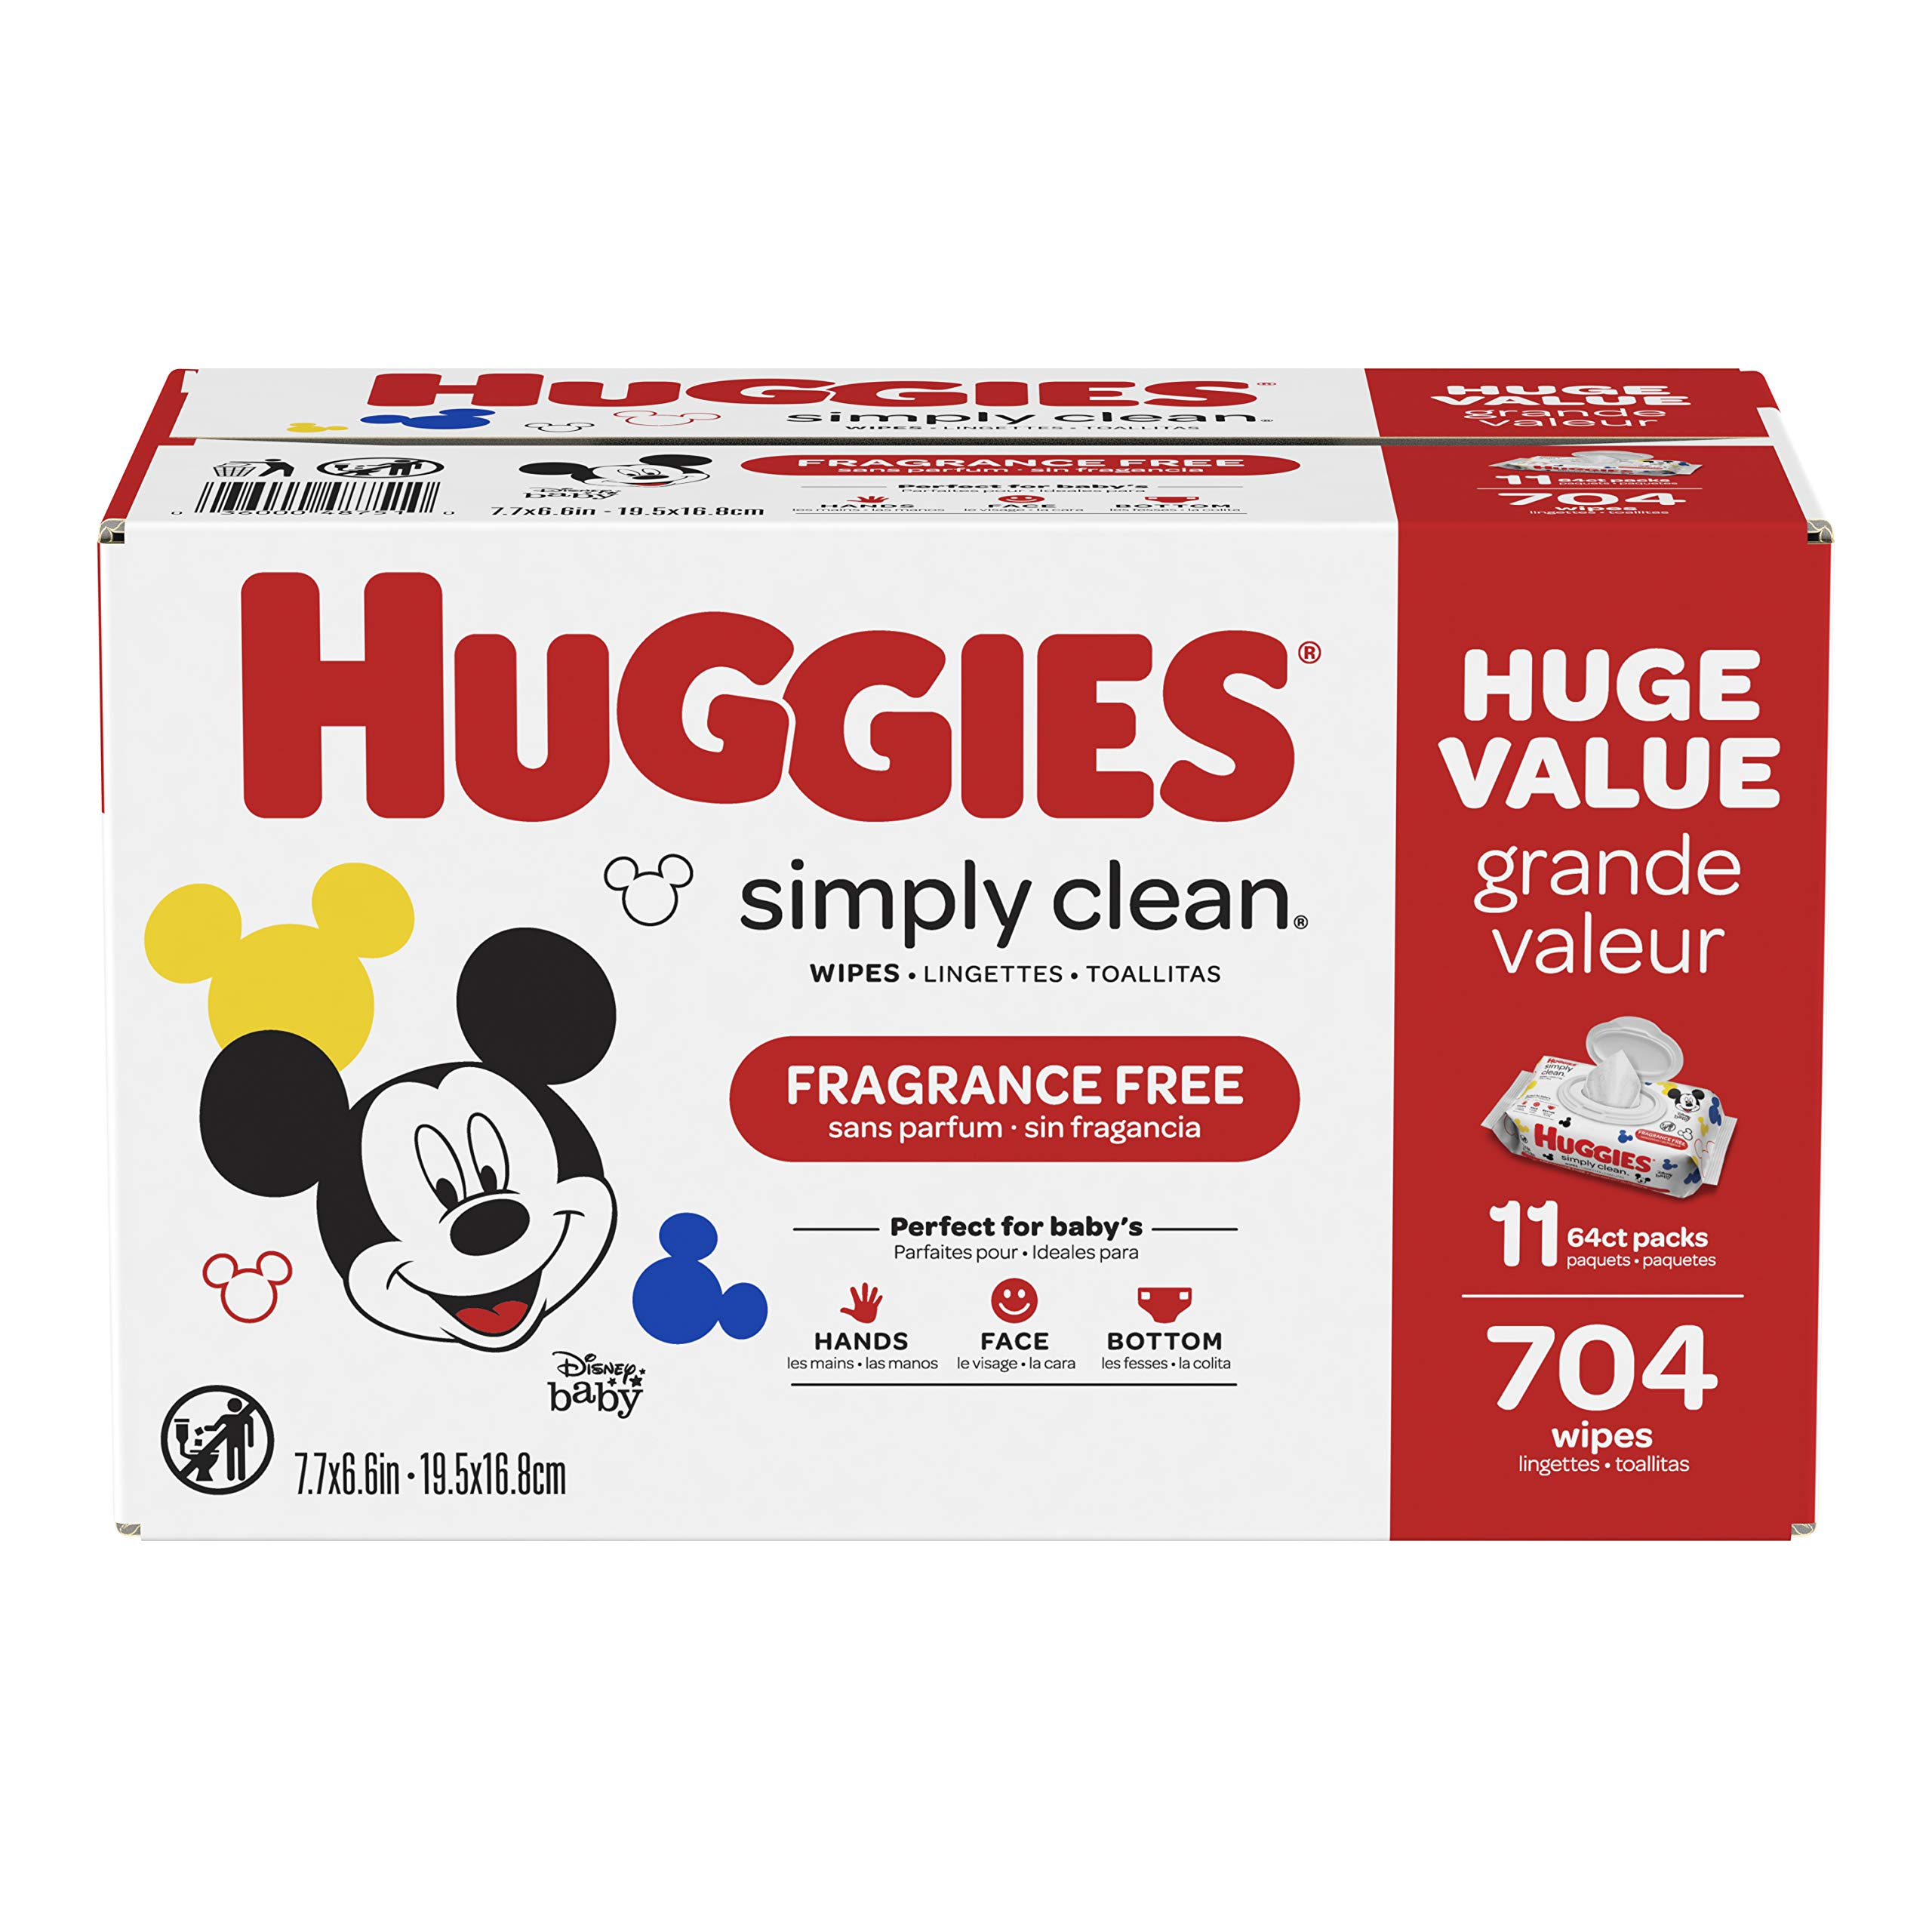 HUGGIES Simply Clean Fragrance-free Baby Wipes, Soft Pack (11-Pack, 704 Sheets Total), Alcohol-free, Hypoallergenic (Packaging May Vary) by HUGGIES